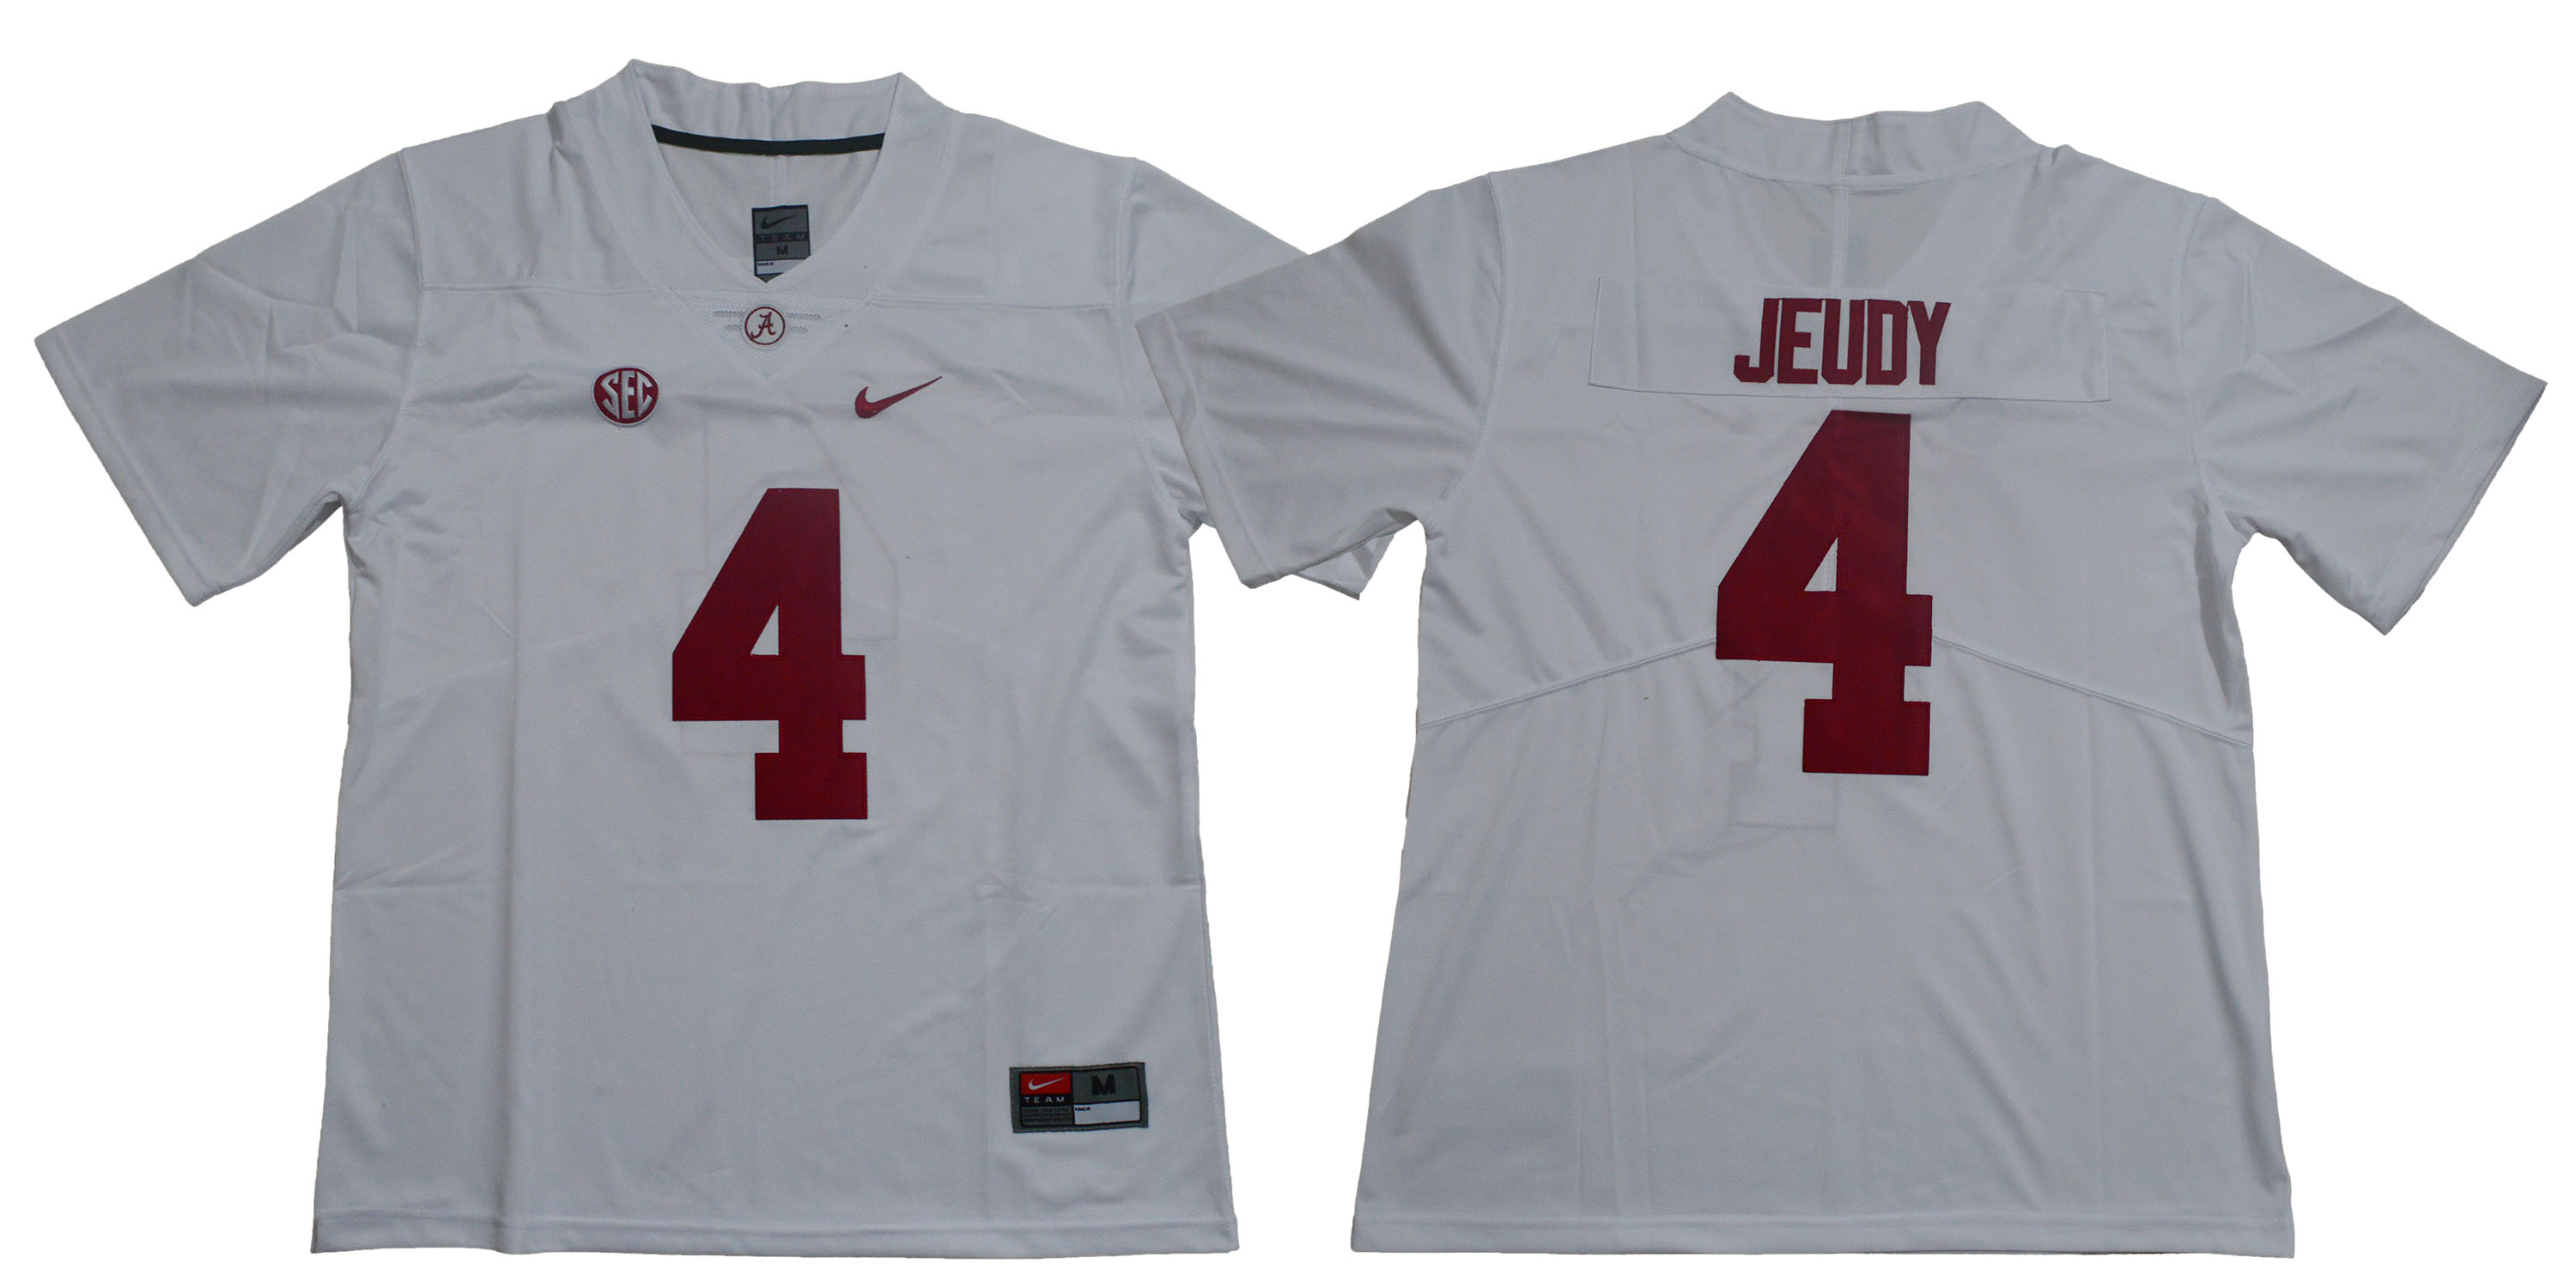 Alabama Crimson Tide 4 Jerry Jeudy White Nike College Football Jersey